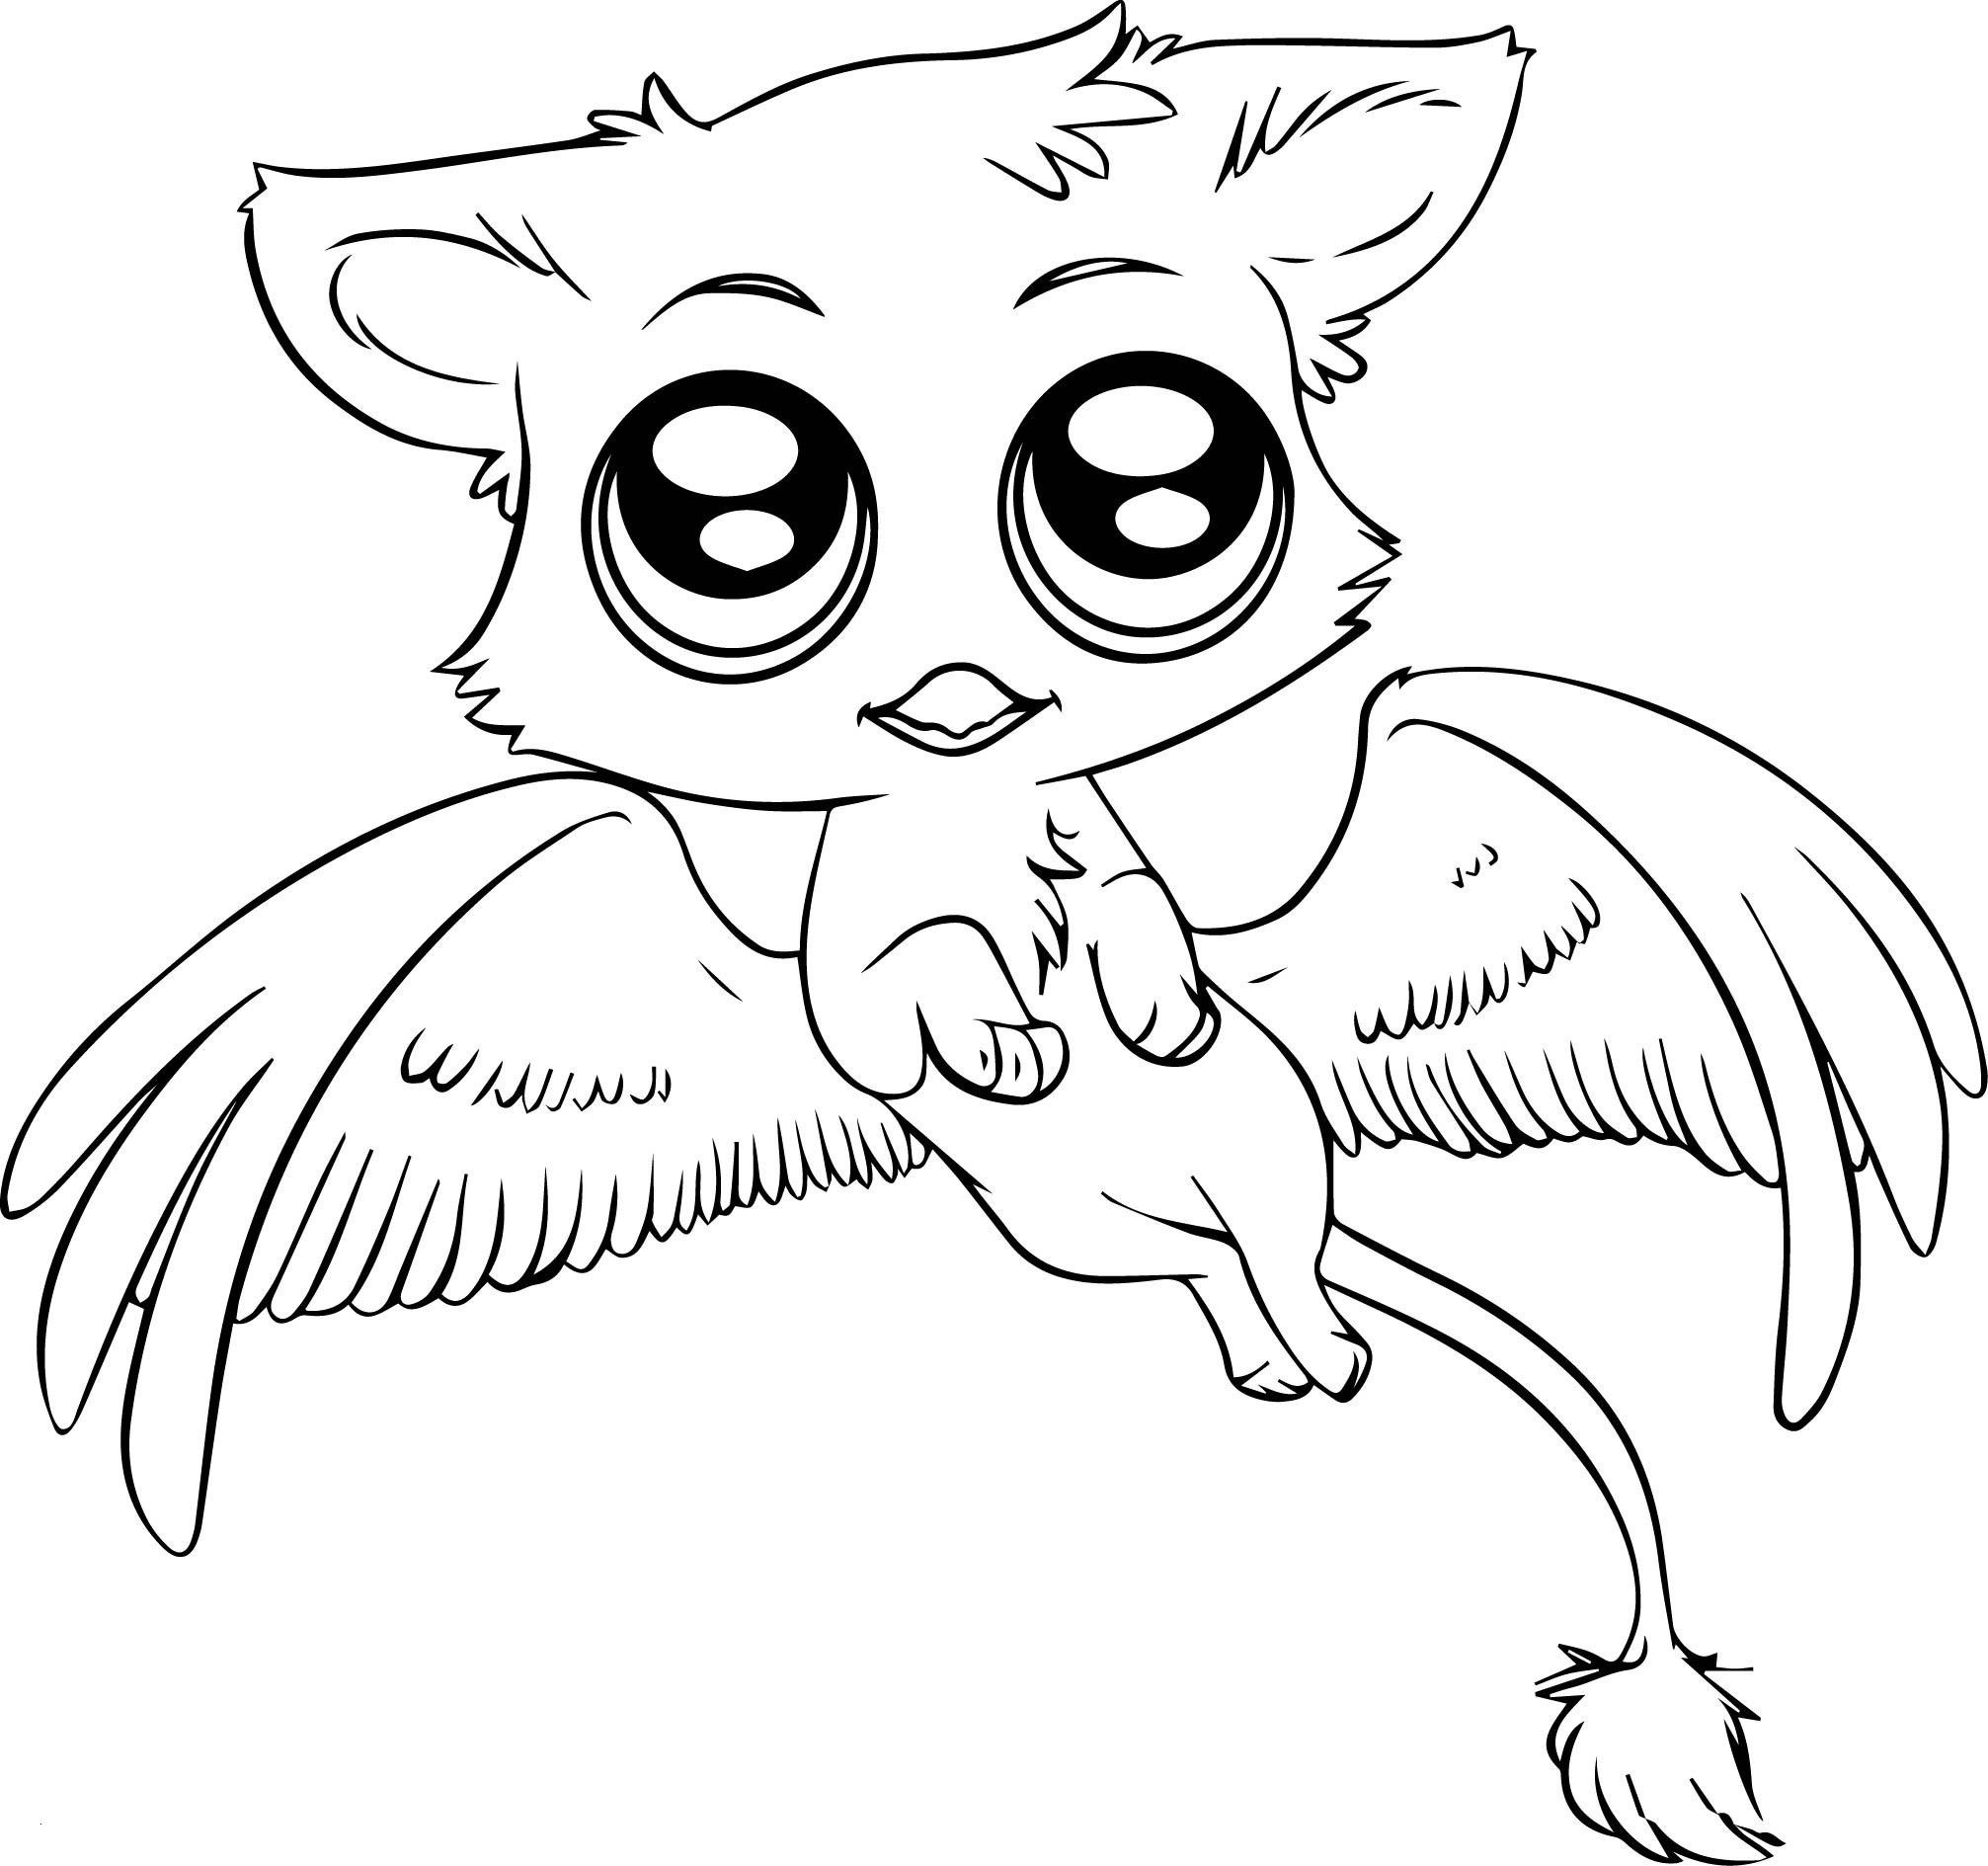 Cute Baby Animal Coloring Pages To Print Through The Thousand Images On Line In Relation To Animal Coloring Books Animal Coloring Pages Baby Animal Drawings